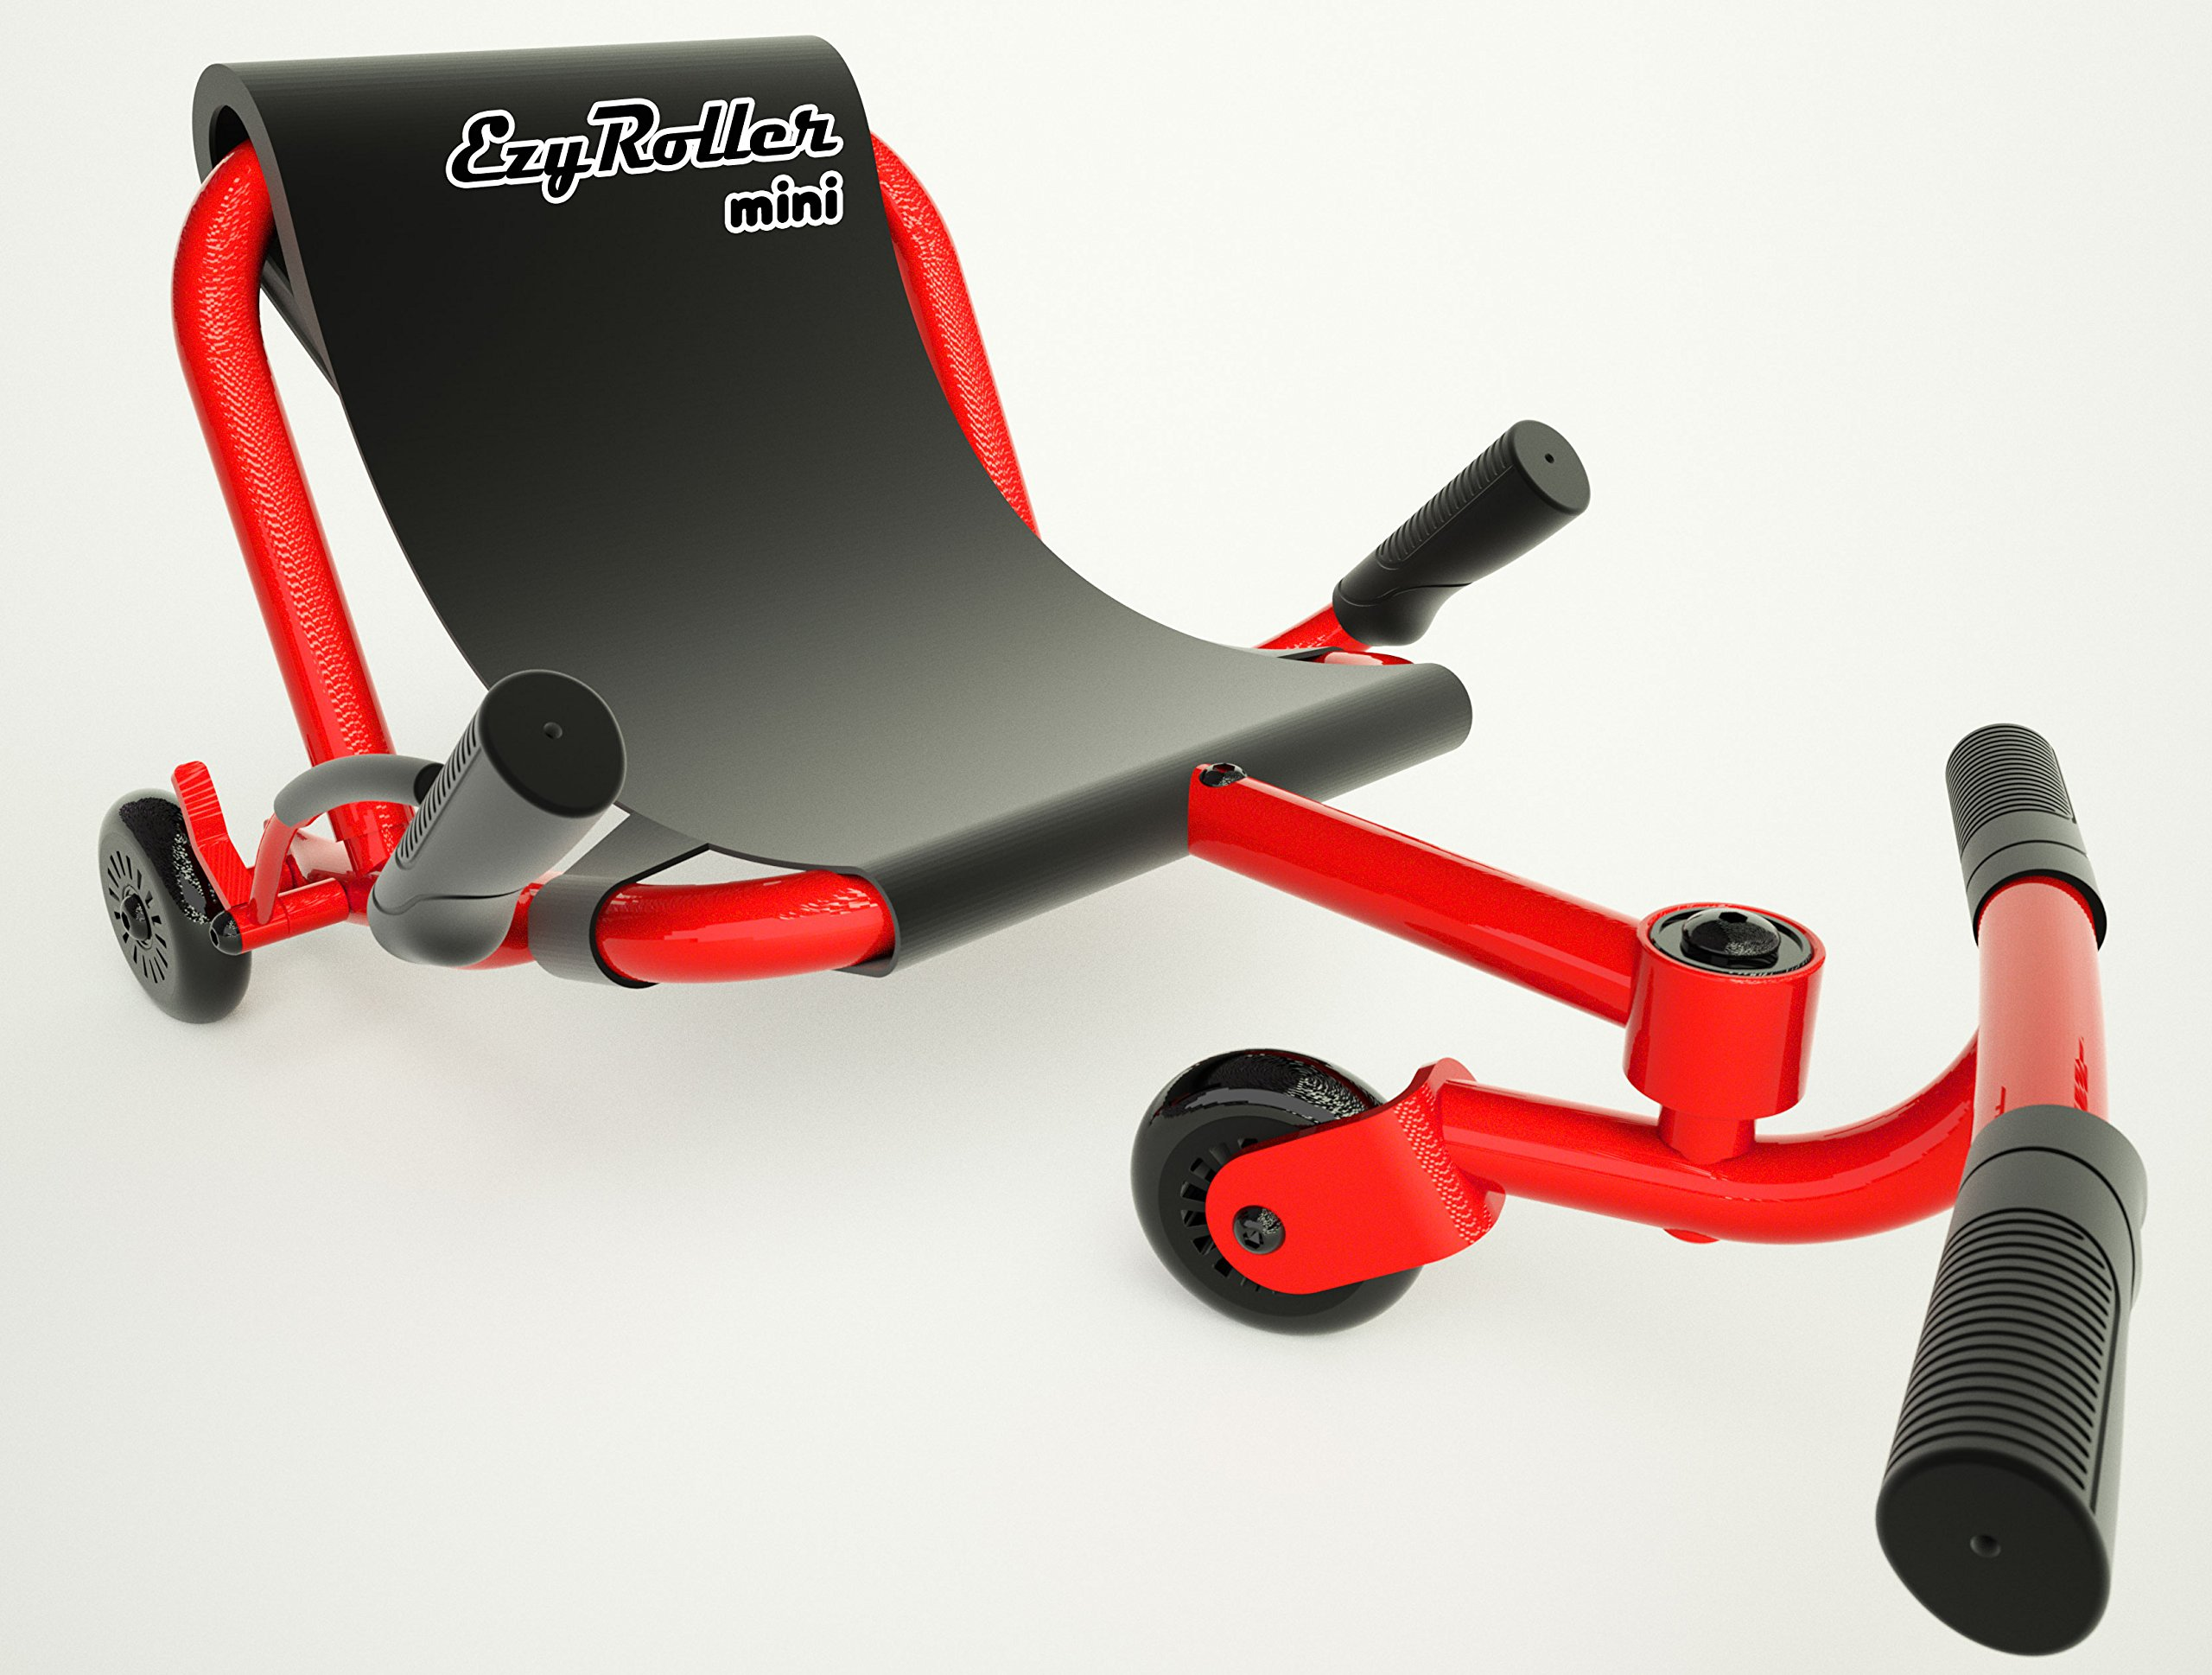 EzyRoller Mini - Red - Ride On for Children Ages 2 to 5 Years Old Twist on Classic Scooter - Kids Move Using Right-Left Leg Movements to Push Foot bar - Fun Play & Exercise for Boys & Girls